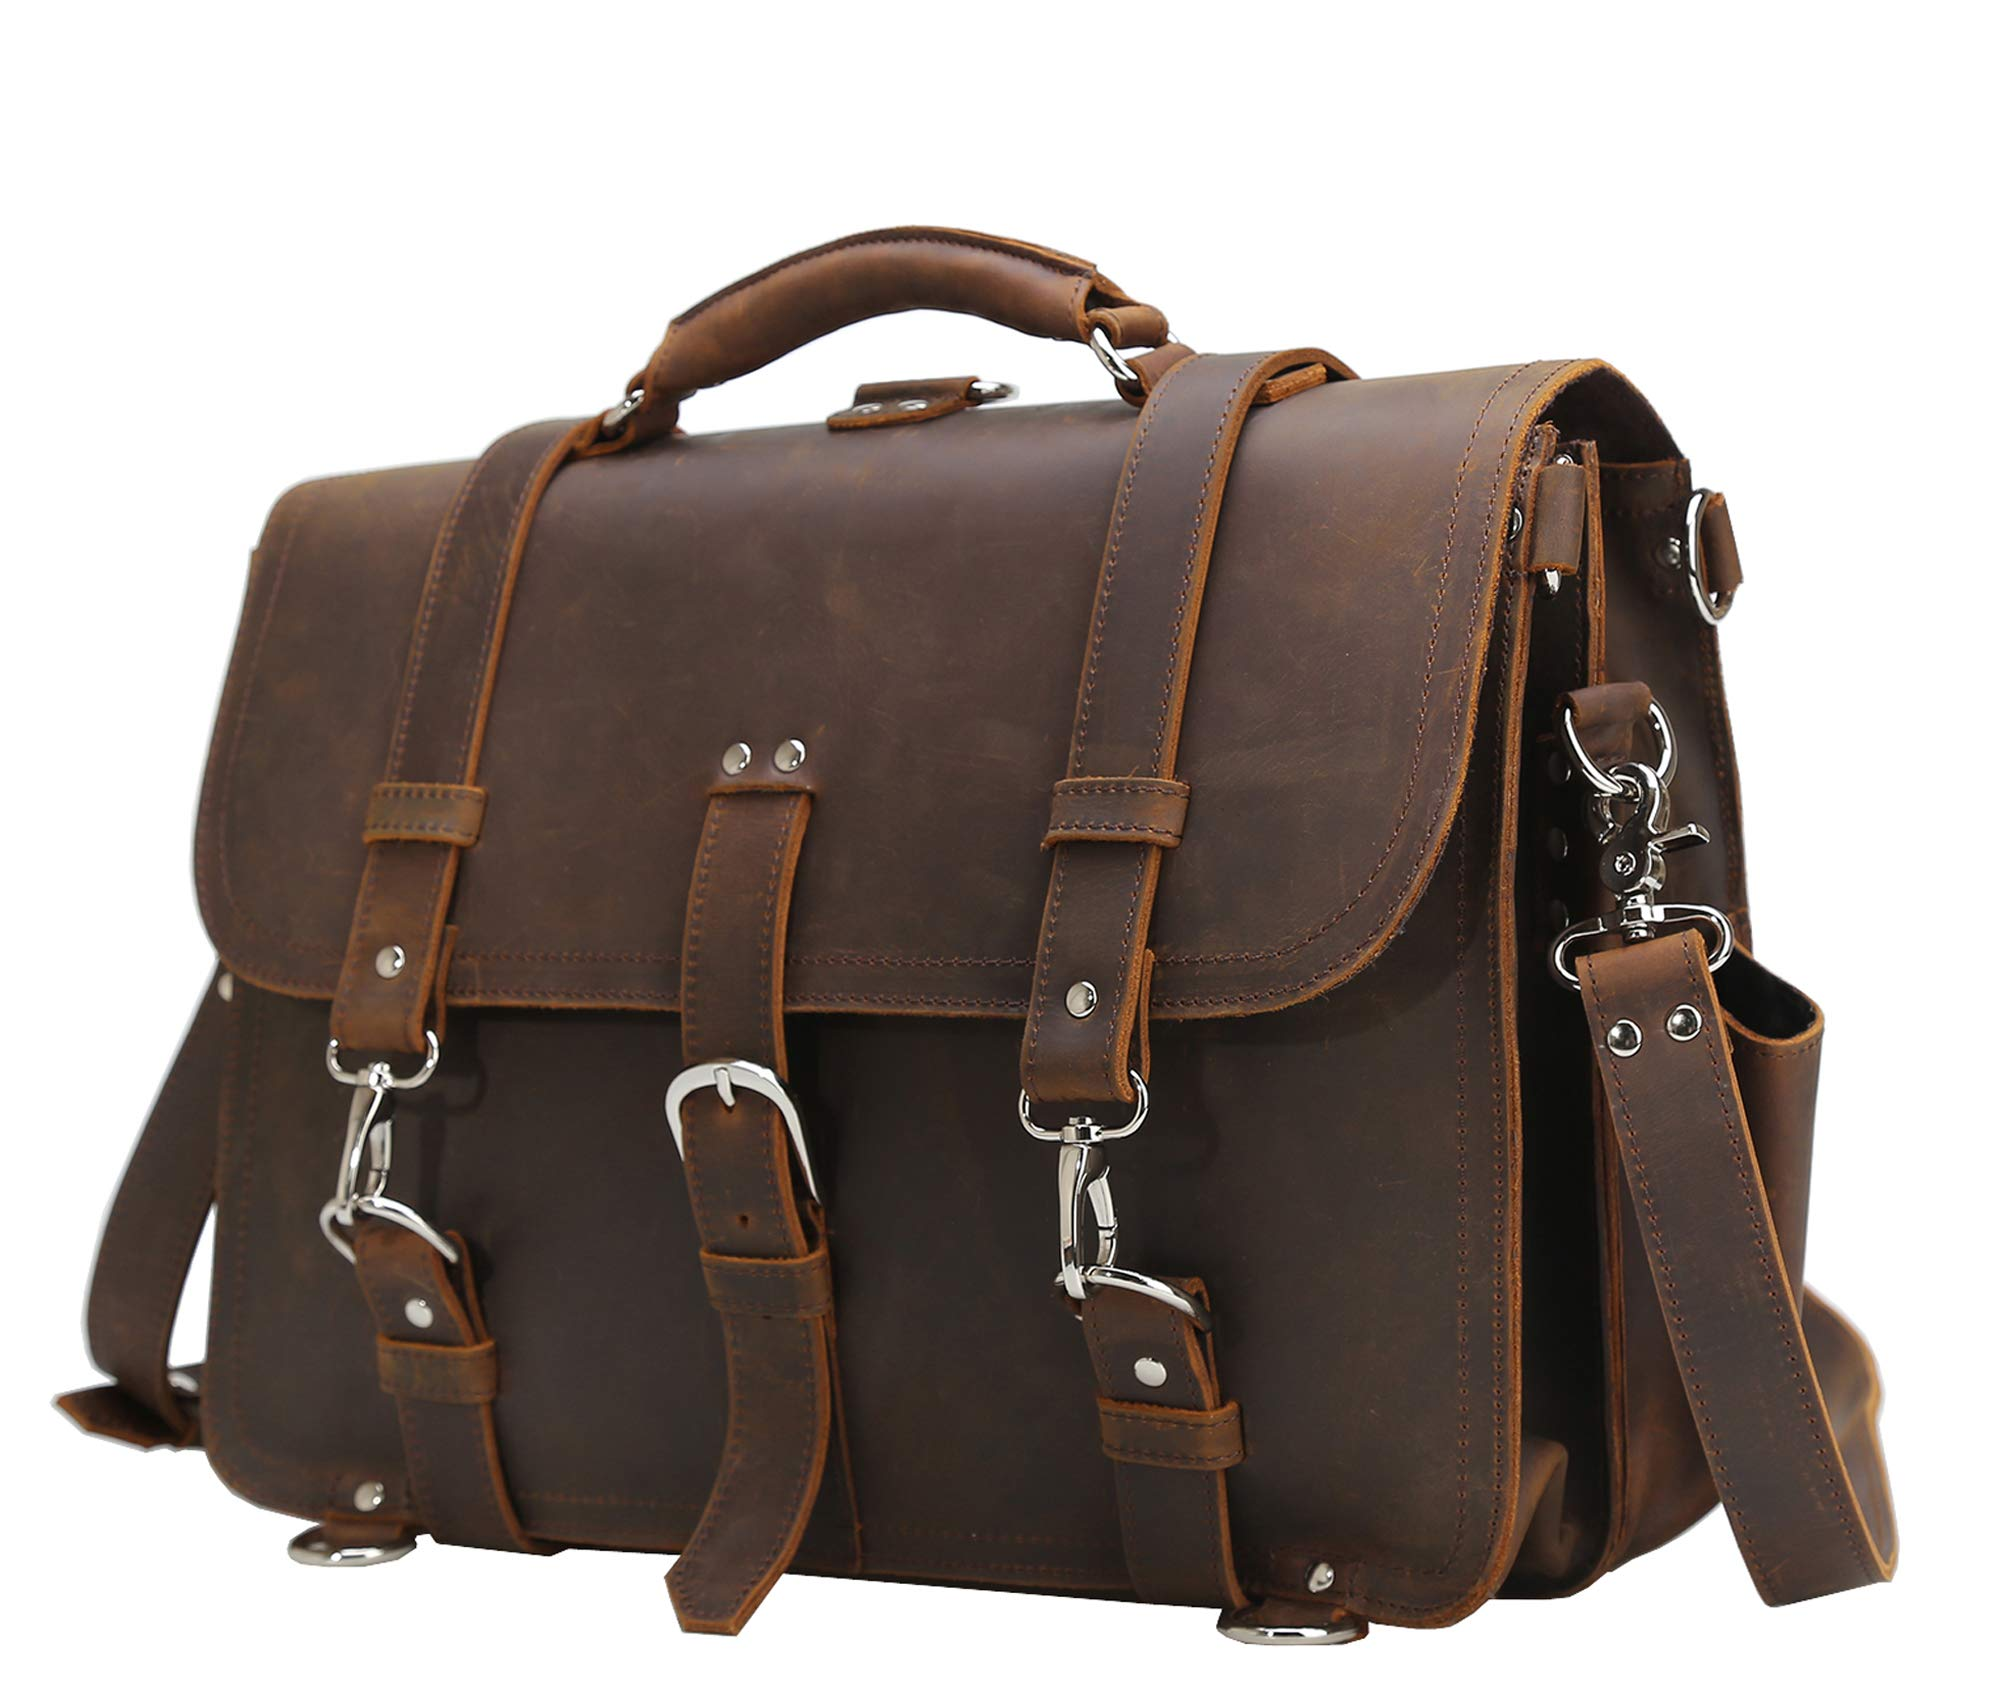 Texbo Men's 16 Inch Thick Cowhide Leather Briefcase Laptop Shoulder Messenger Bag Tote